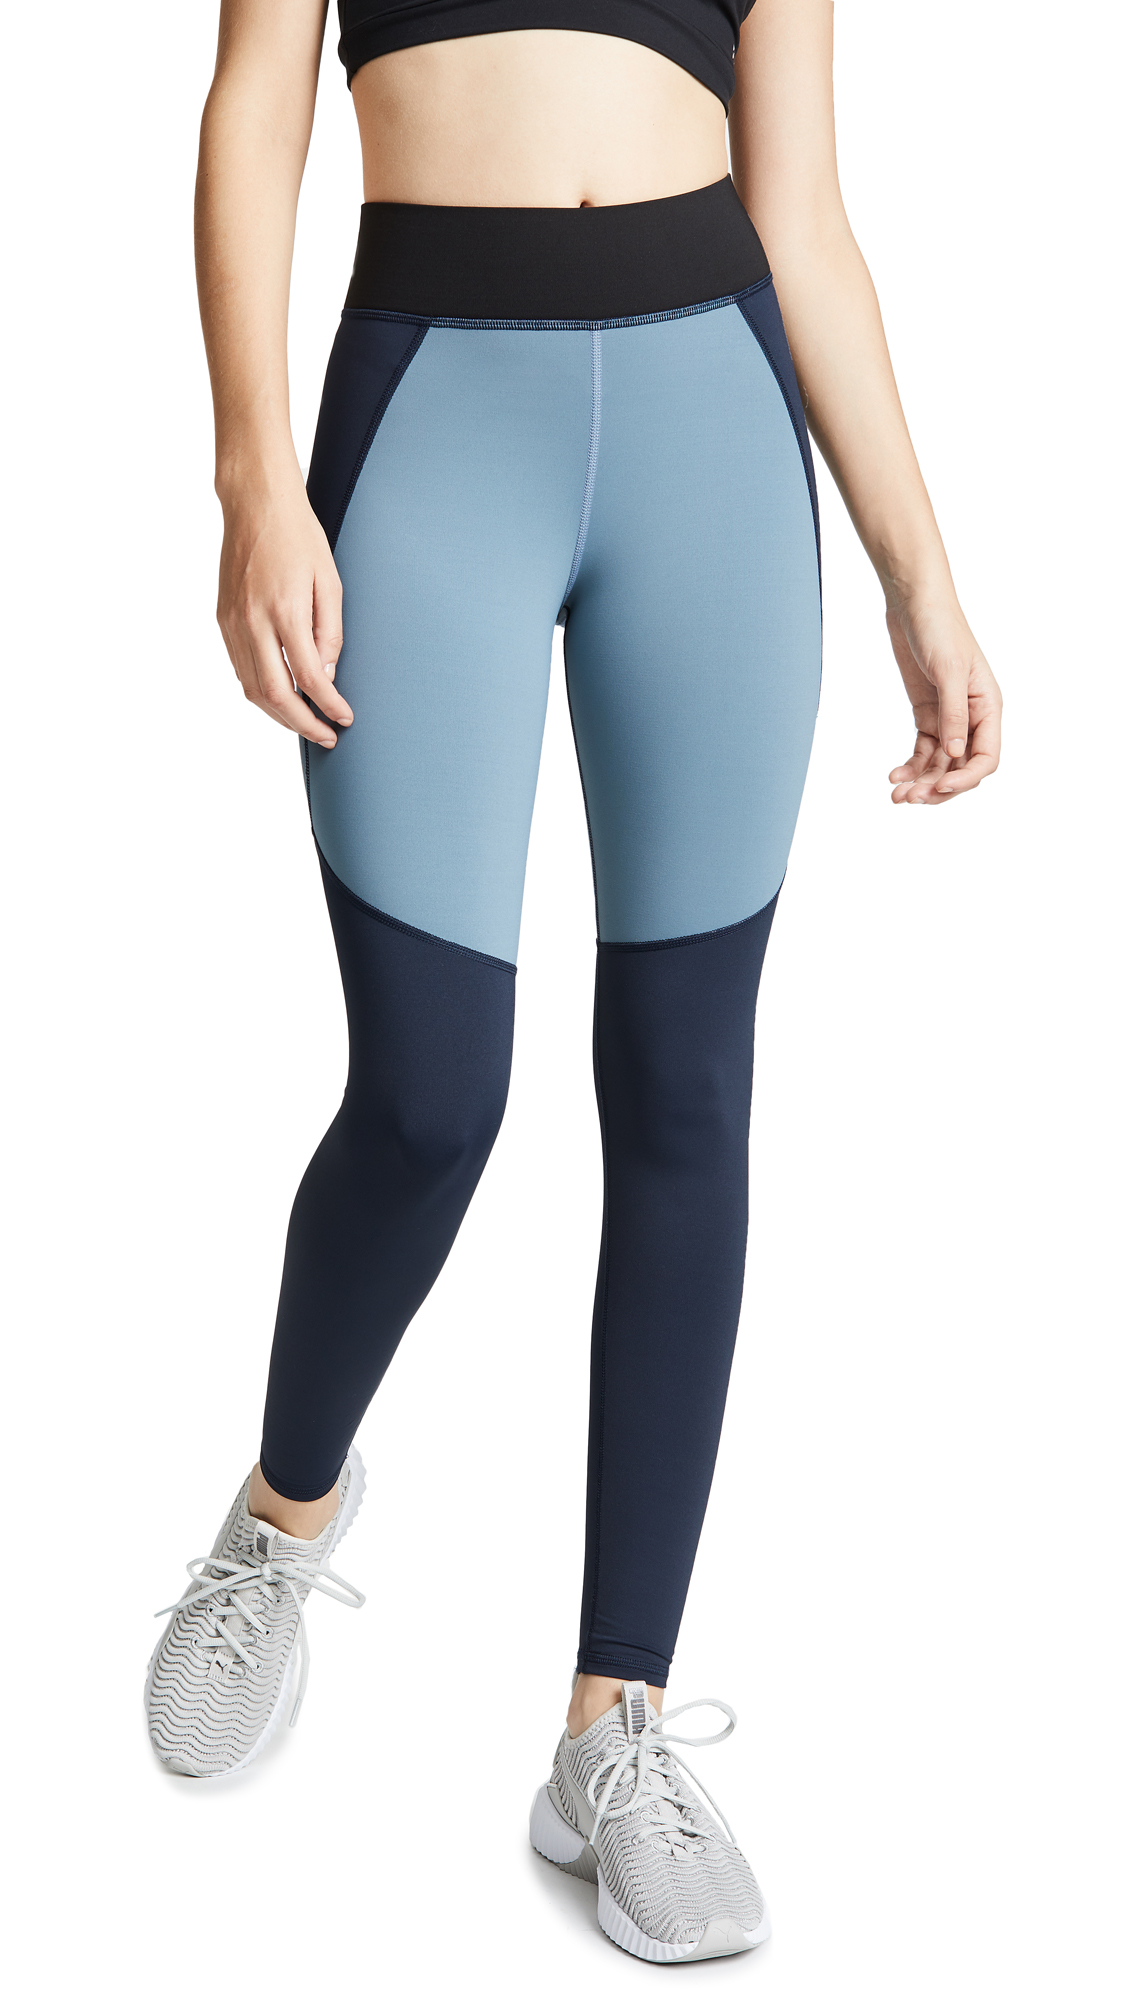 Fabric: Athletic jersey Contrast paneling Leggings Cropped profile Covered elastic at waist Shell: 88% nylon/12% spandex Wash cold Made in Canada Measurements Measurements from size S Rise: 9in / 23cm Inseam: 24in / 61cm Leg opening: 7.75in / 20cm